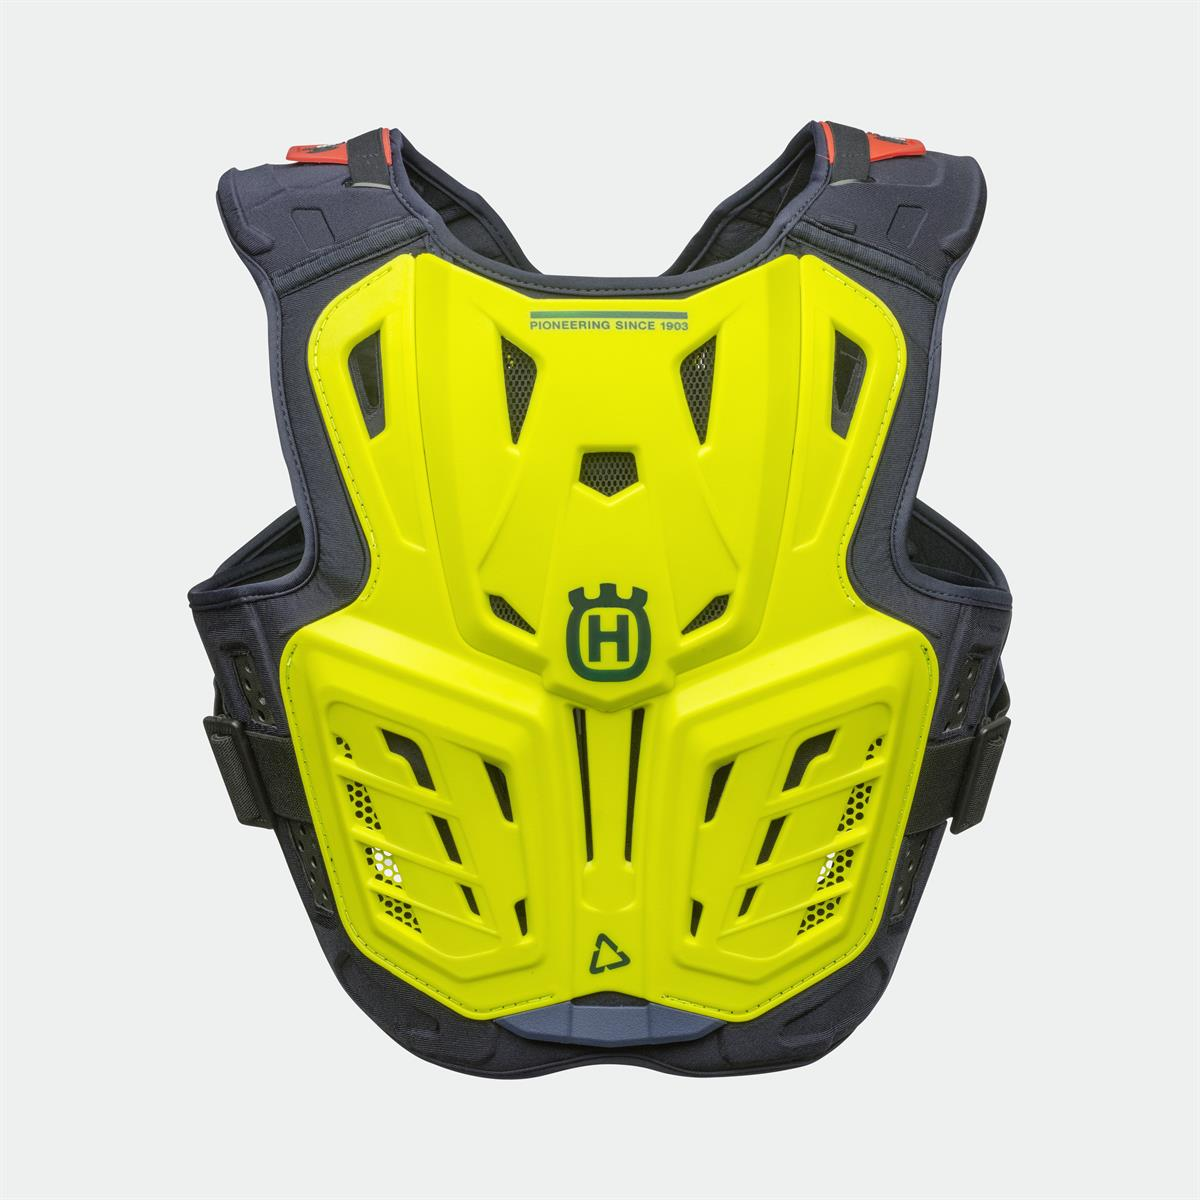 Husqvarna Motorcycles - 2019 Functional Clothing Kids Collection - 4.5 KIDS CHEST PROTECTOR